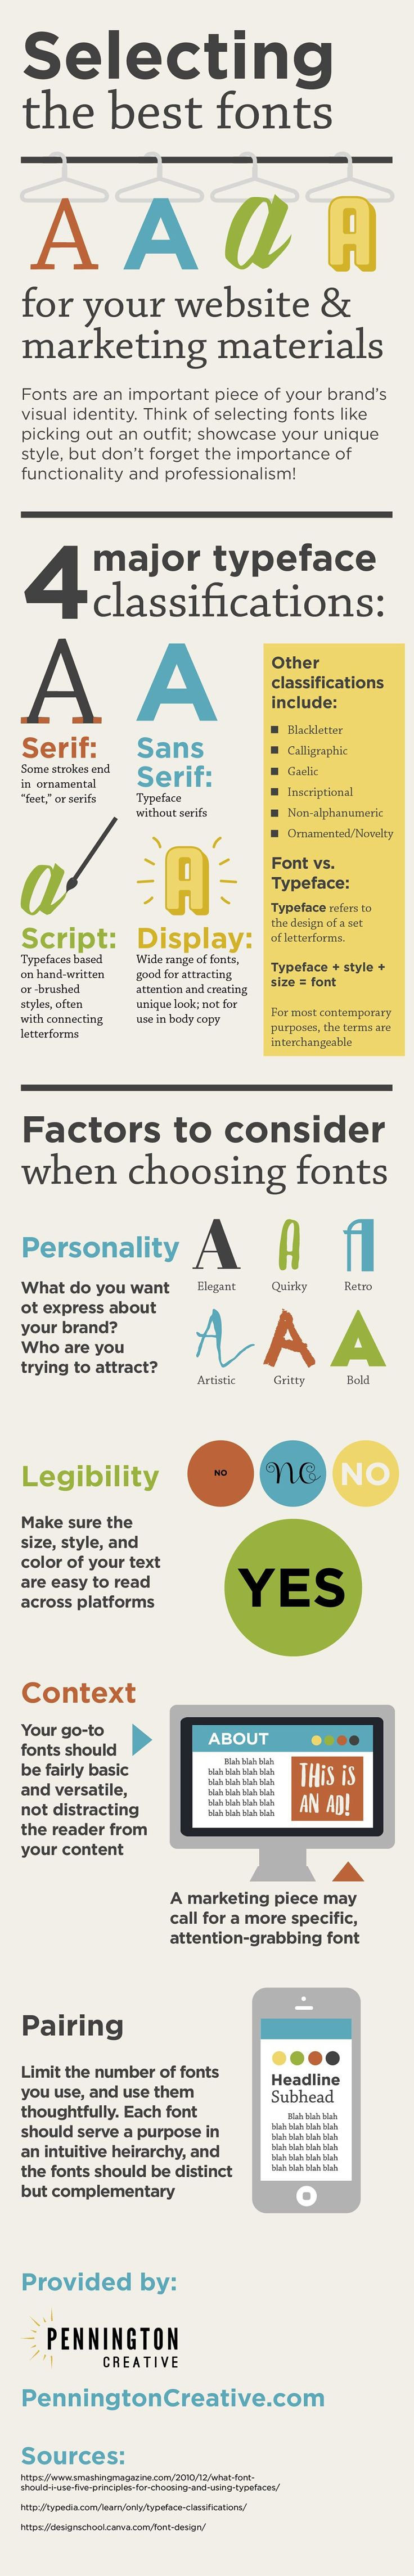 Web Design Basics: How to Choose the Right Font for Your Website [Infographic]